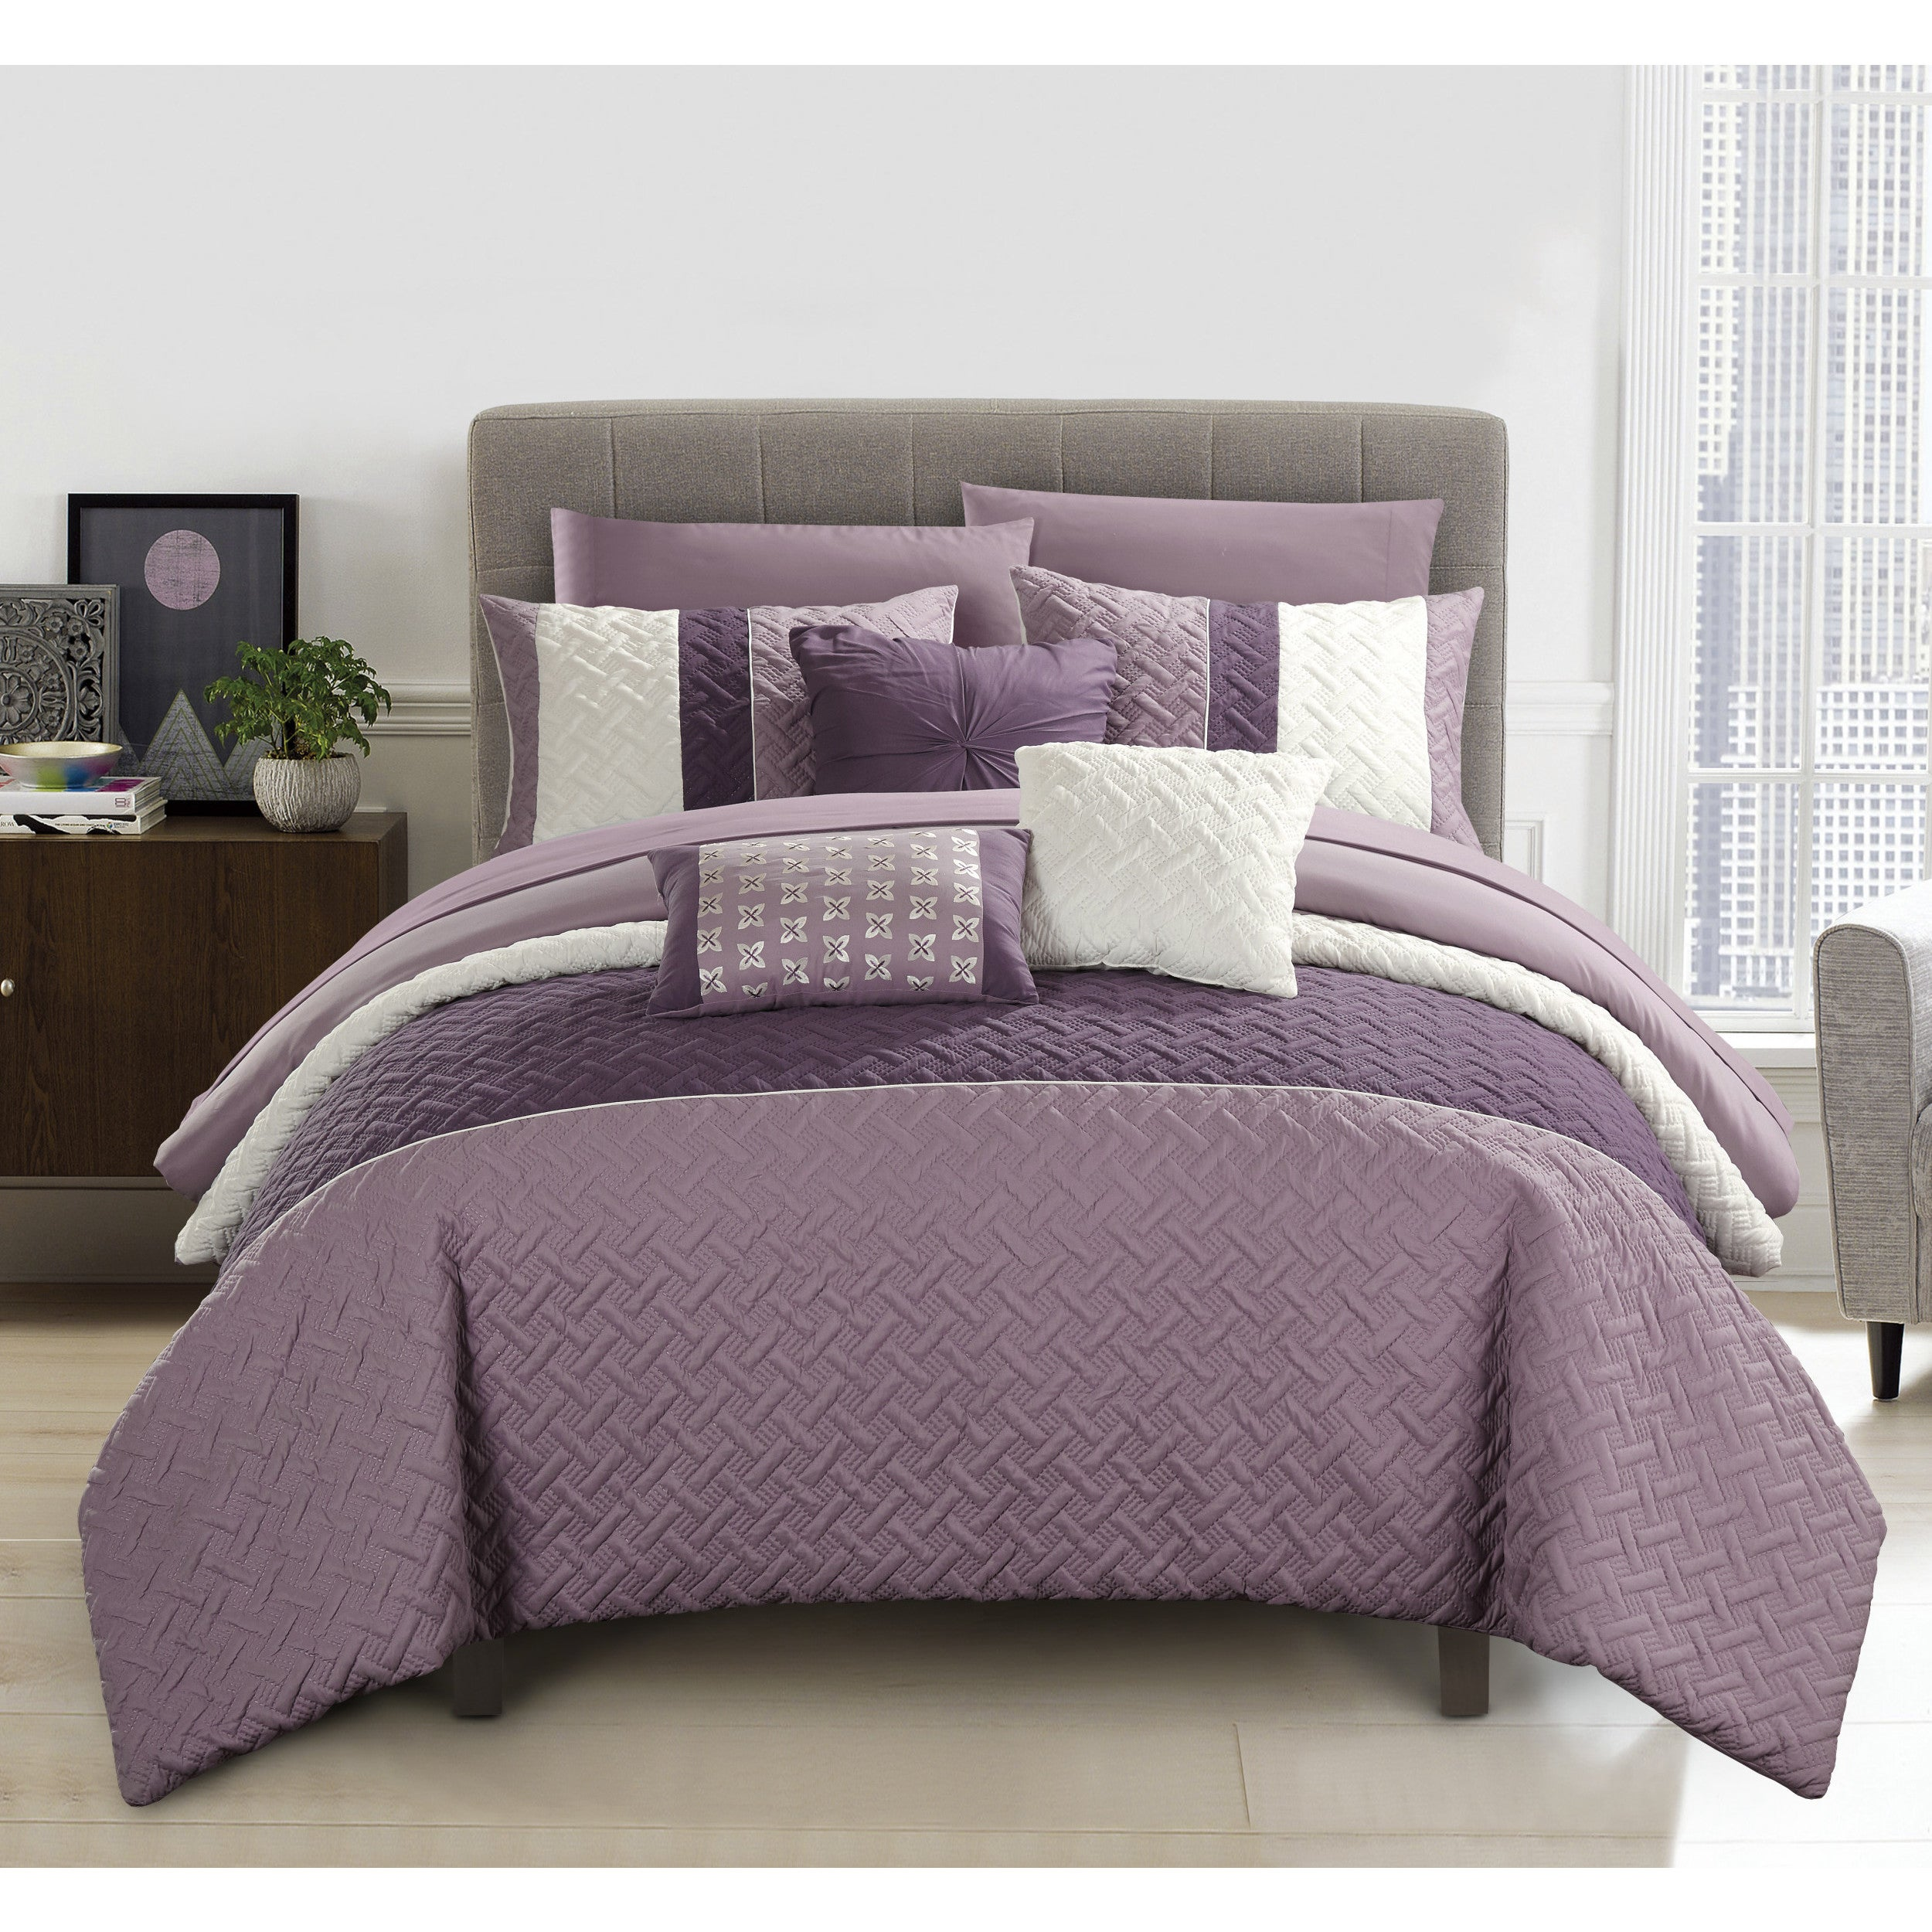 yellow cover covers plum blue on awesome duvet duvets red twin super coverlets bedspreads corsica quilts eggplant purple black bedroom gold size of and royal beds grey cotton white quilt rose luxury patterns amazing sheets bedding king gray set sets brown comforter s floral double full